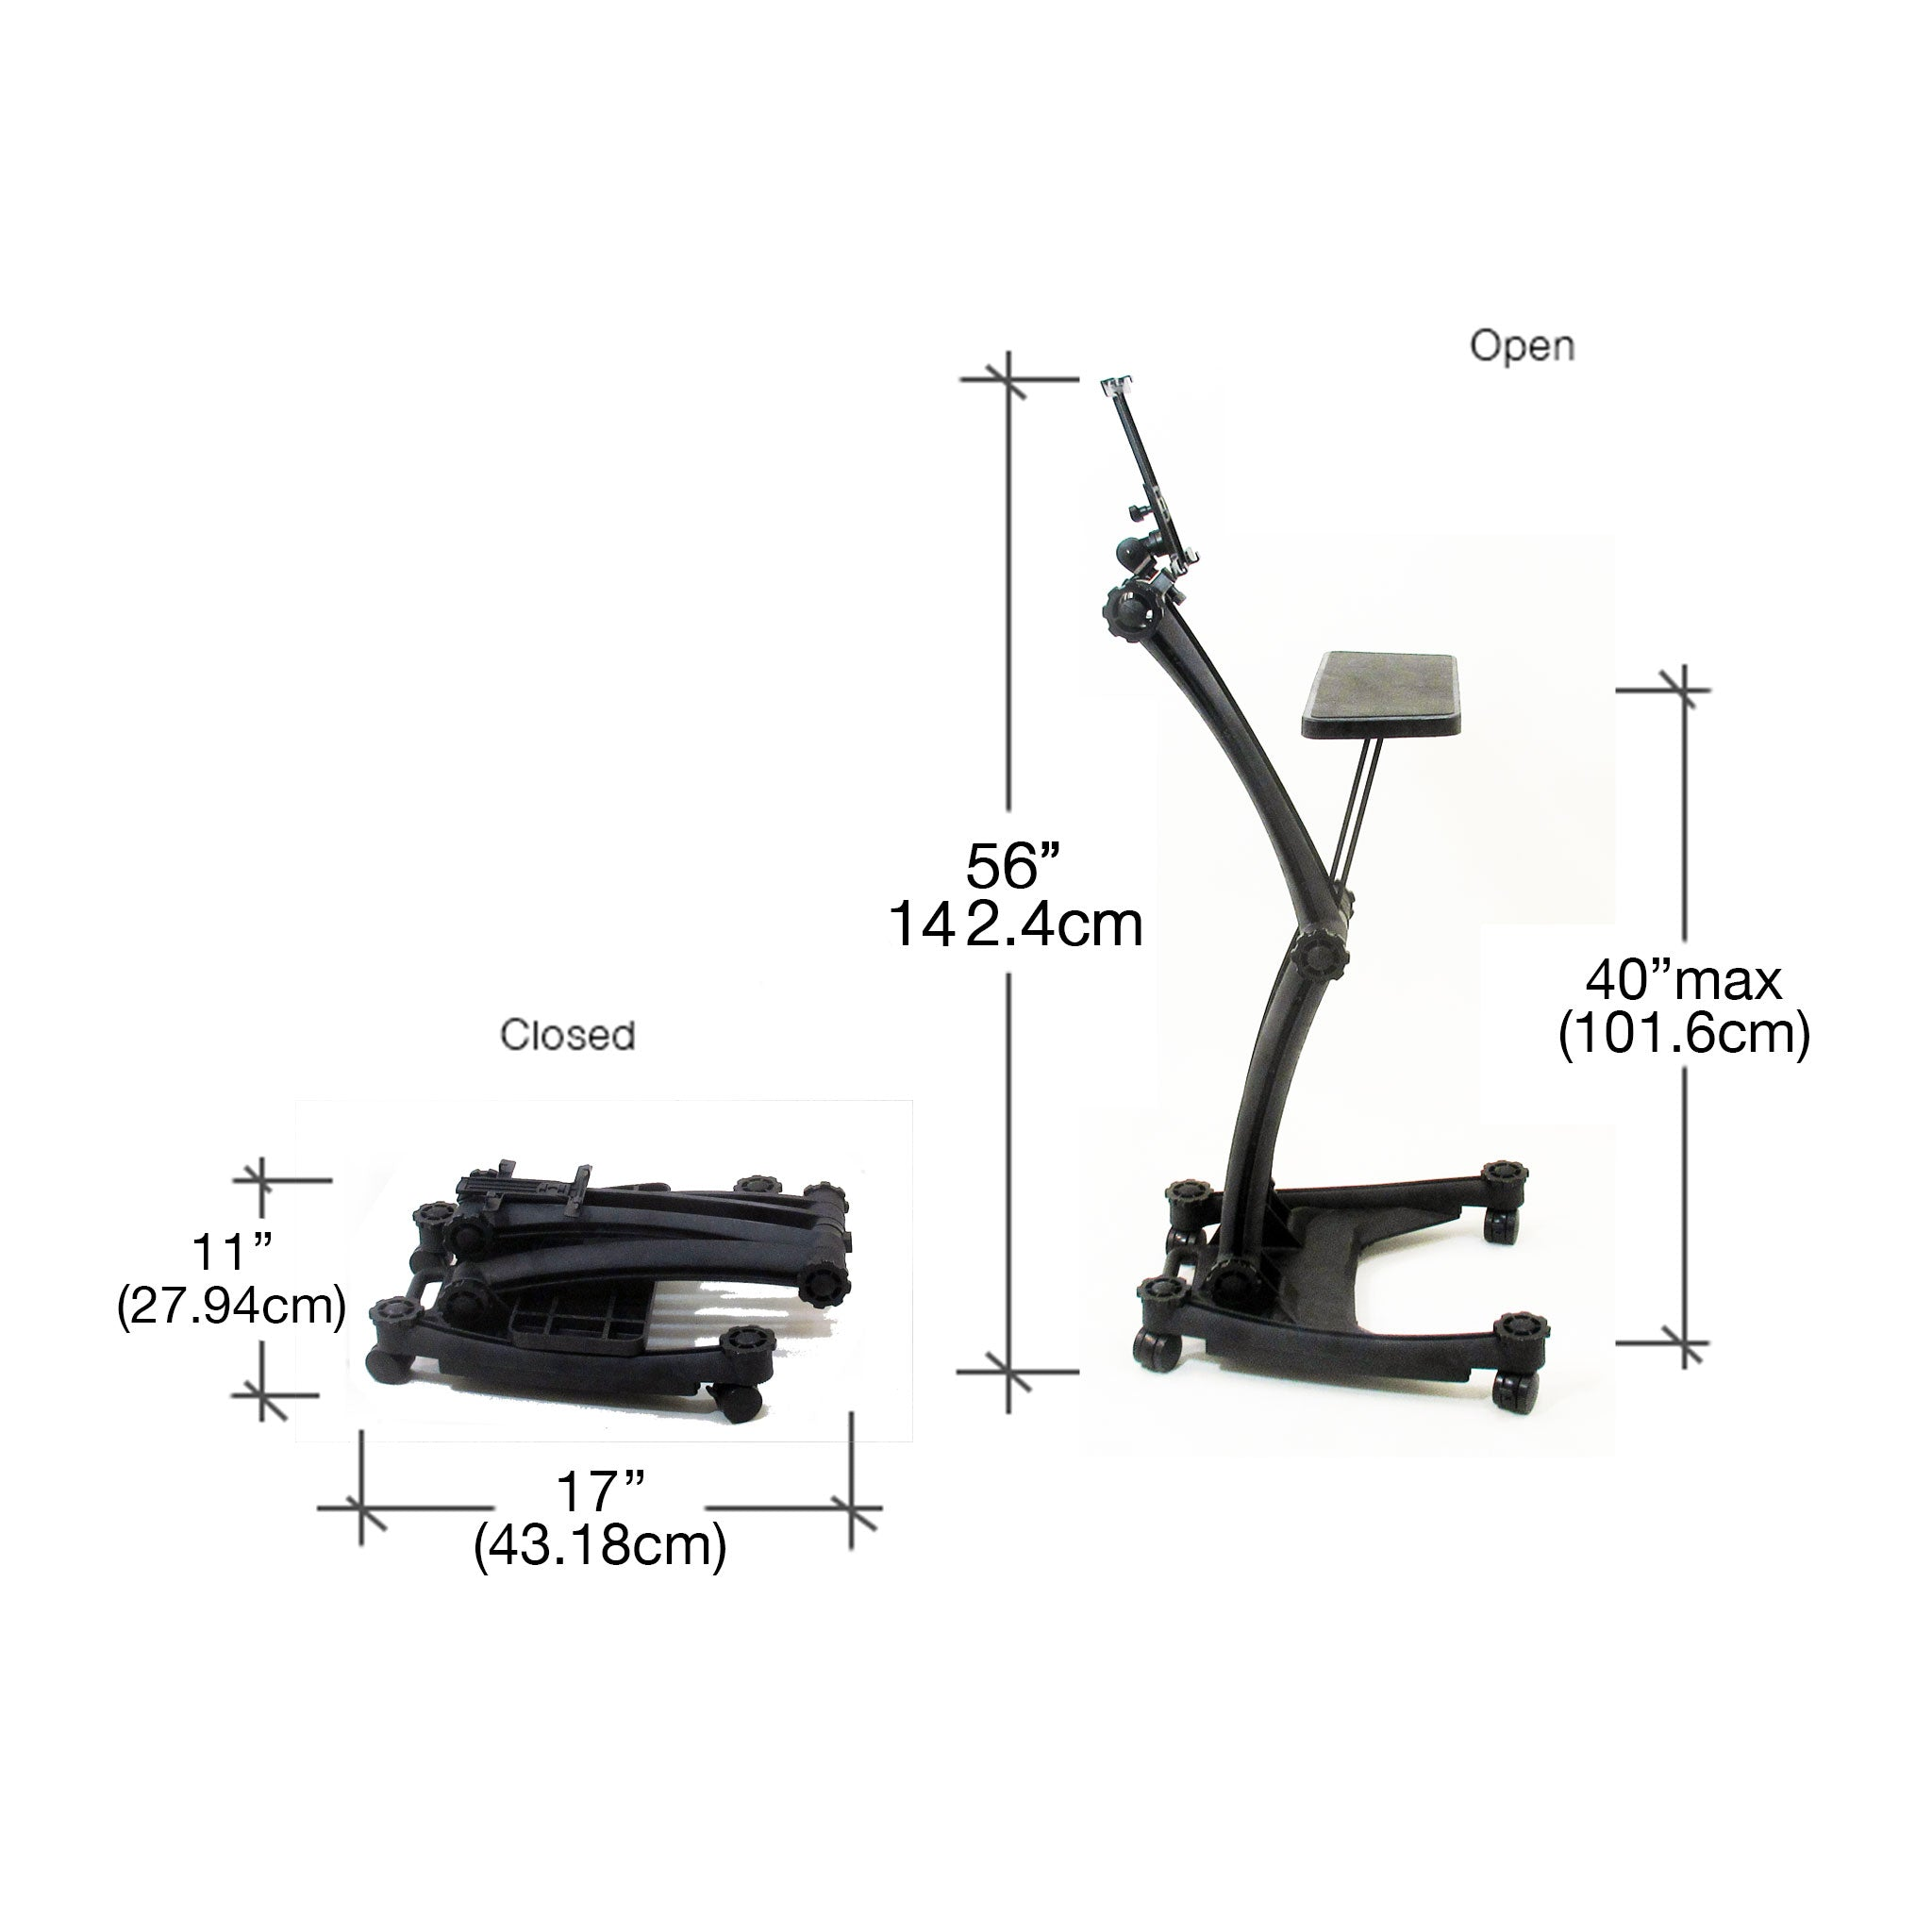 Dimensions of the ZStand Sportster Pro in its closed and full extension positions.